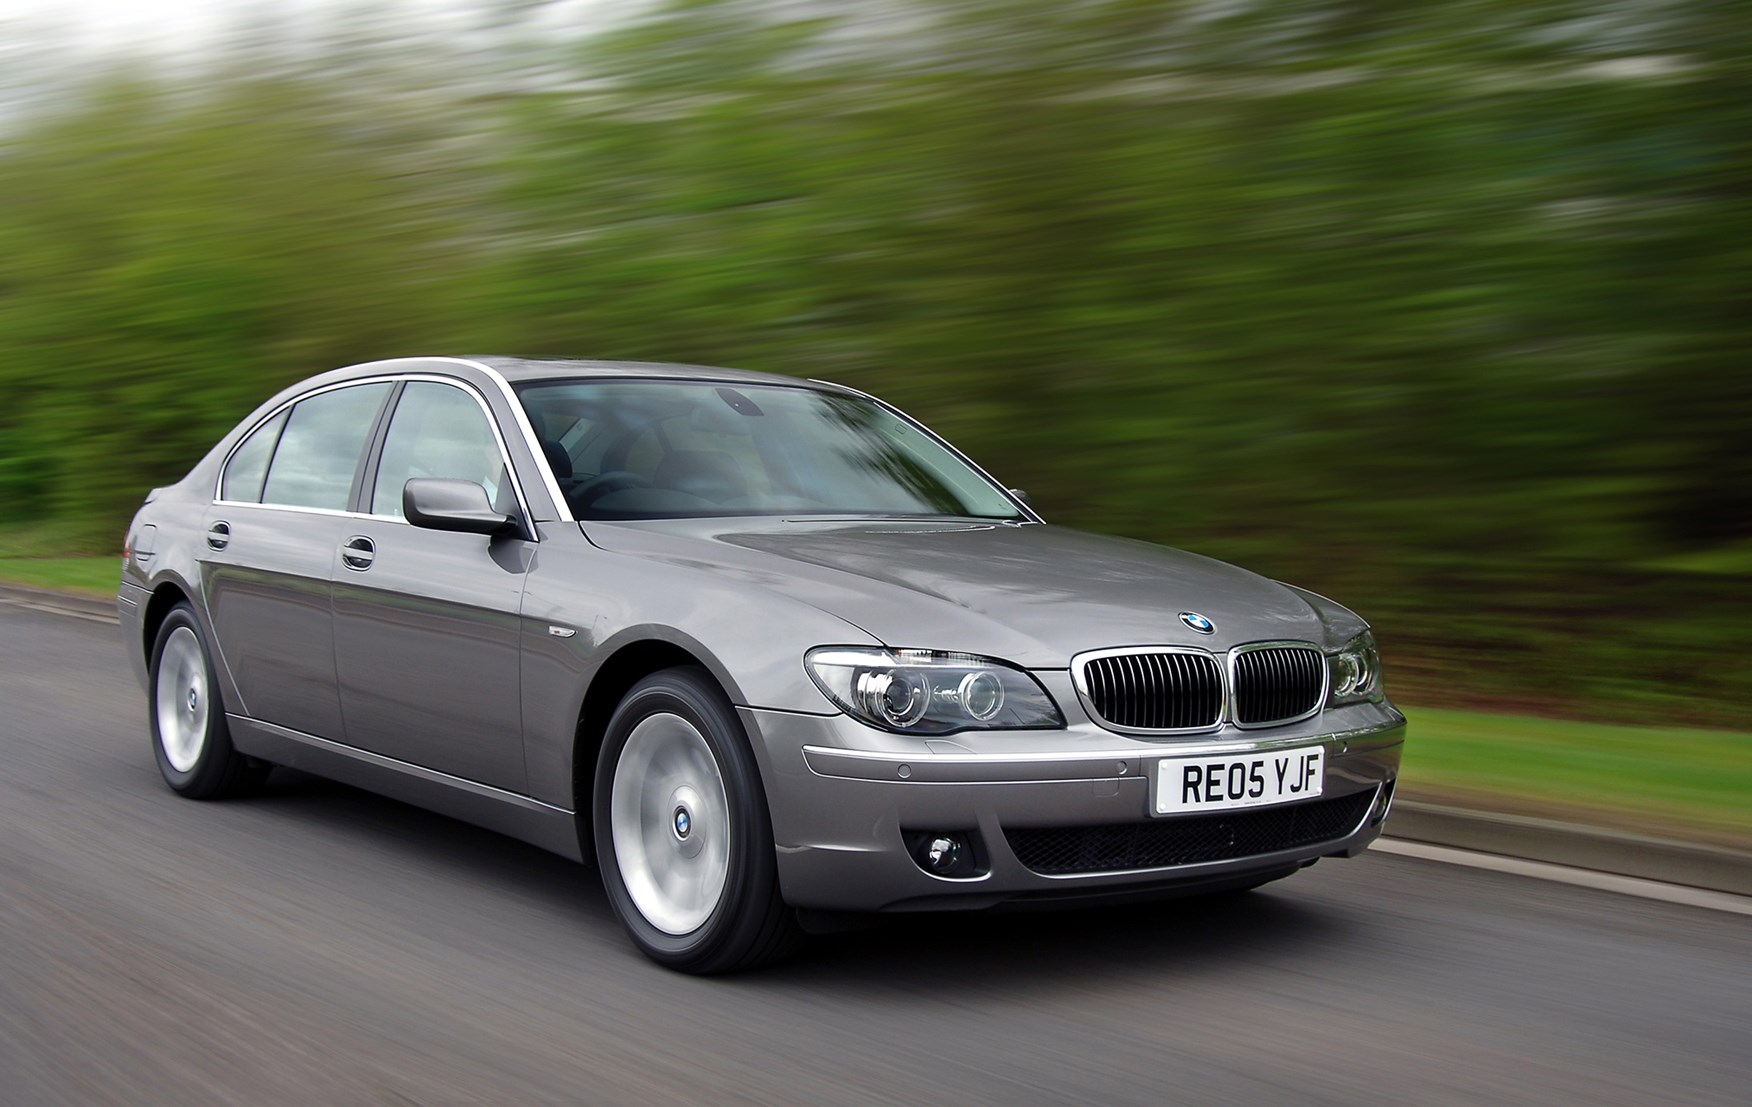 View All Images Of The BMW 7 Series 02 08